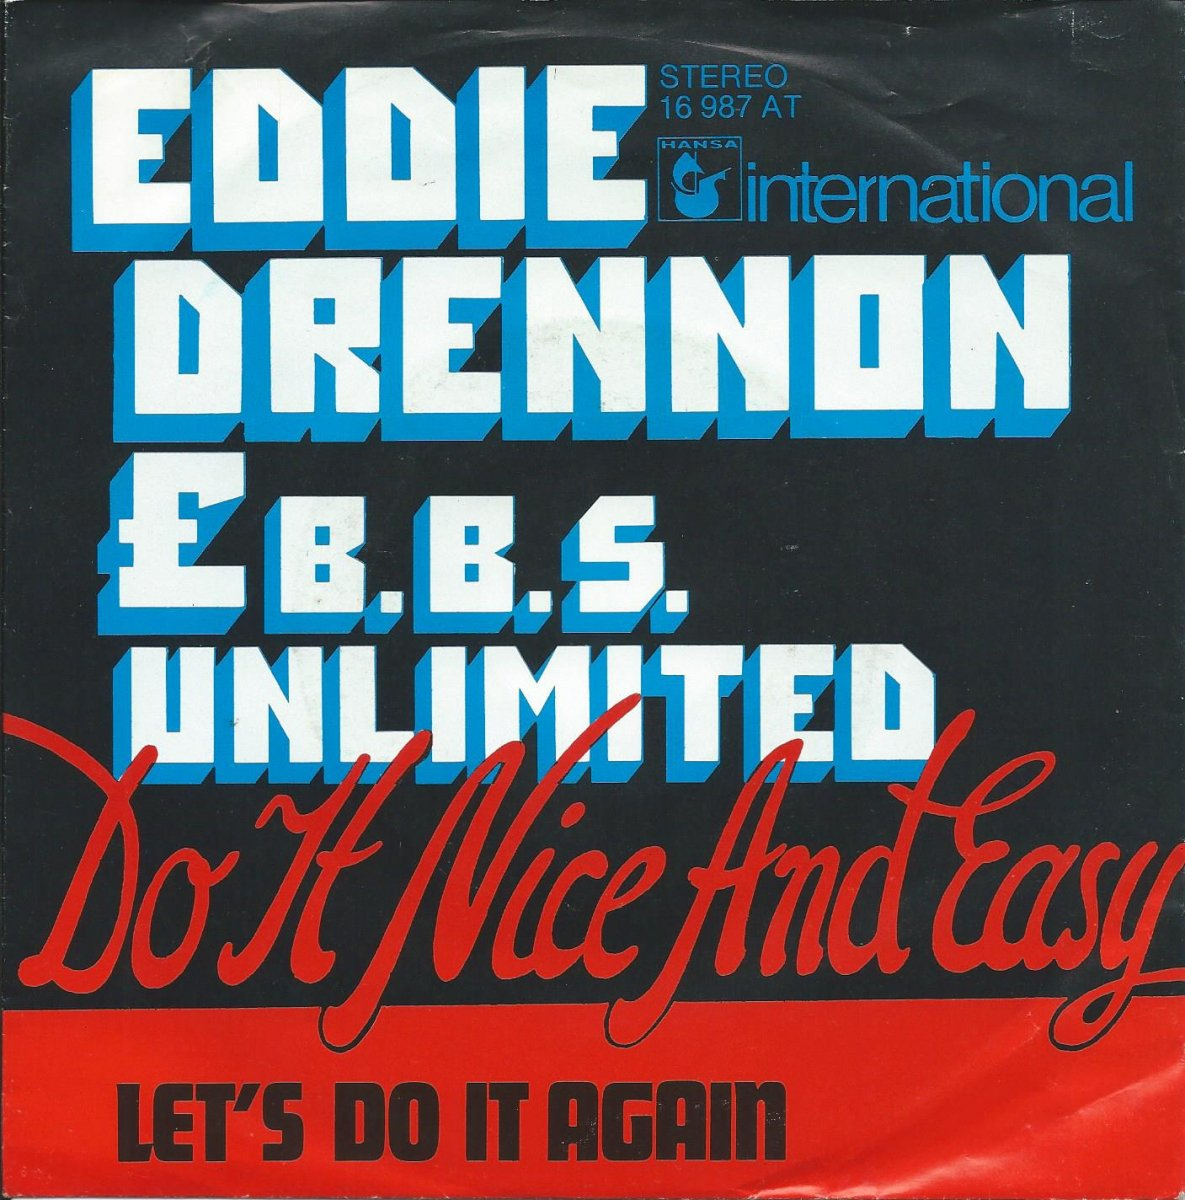 EDDIE DRENNON & B.B.S. UNLIMITED / DO IT NICE AND EASY / LET'S DO IT AGAIN (7